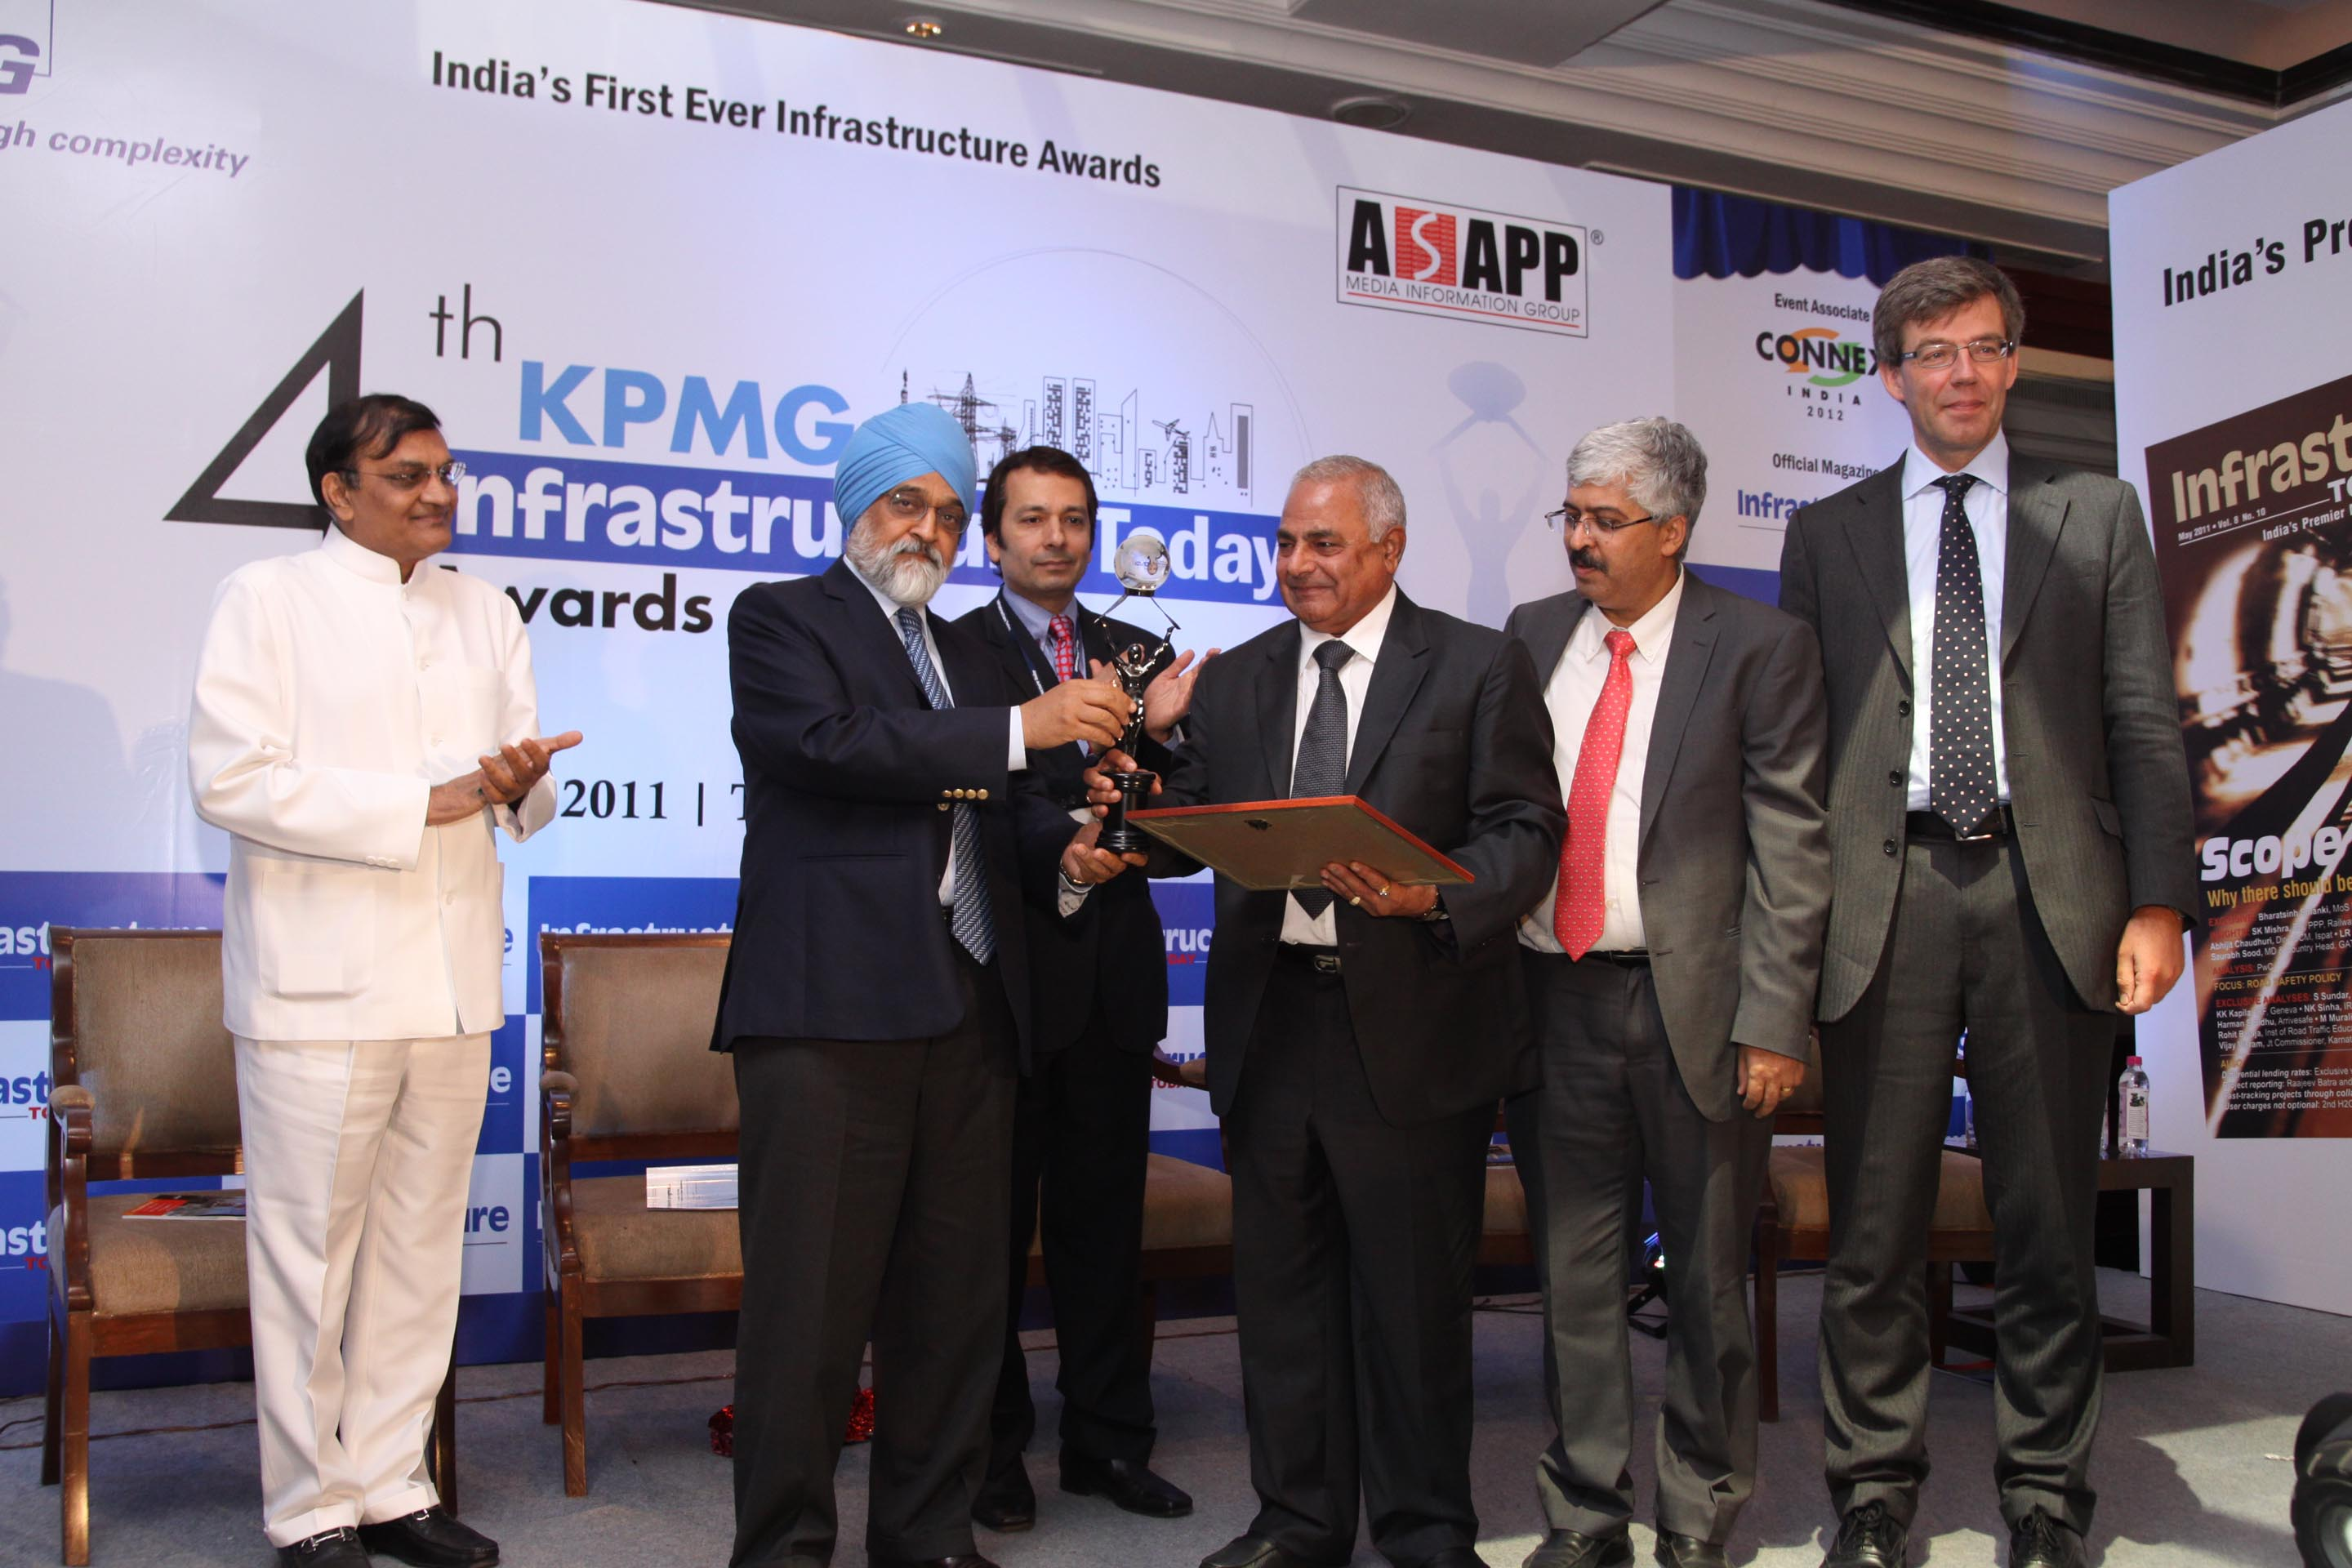 Most Admired Developer Award in Transport Sector at 4th KPMG Infrastructure Today Awards